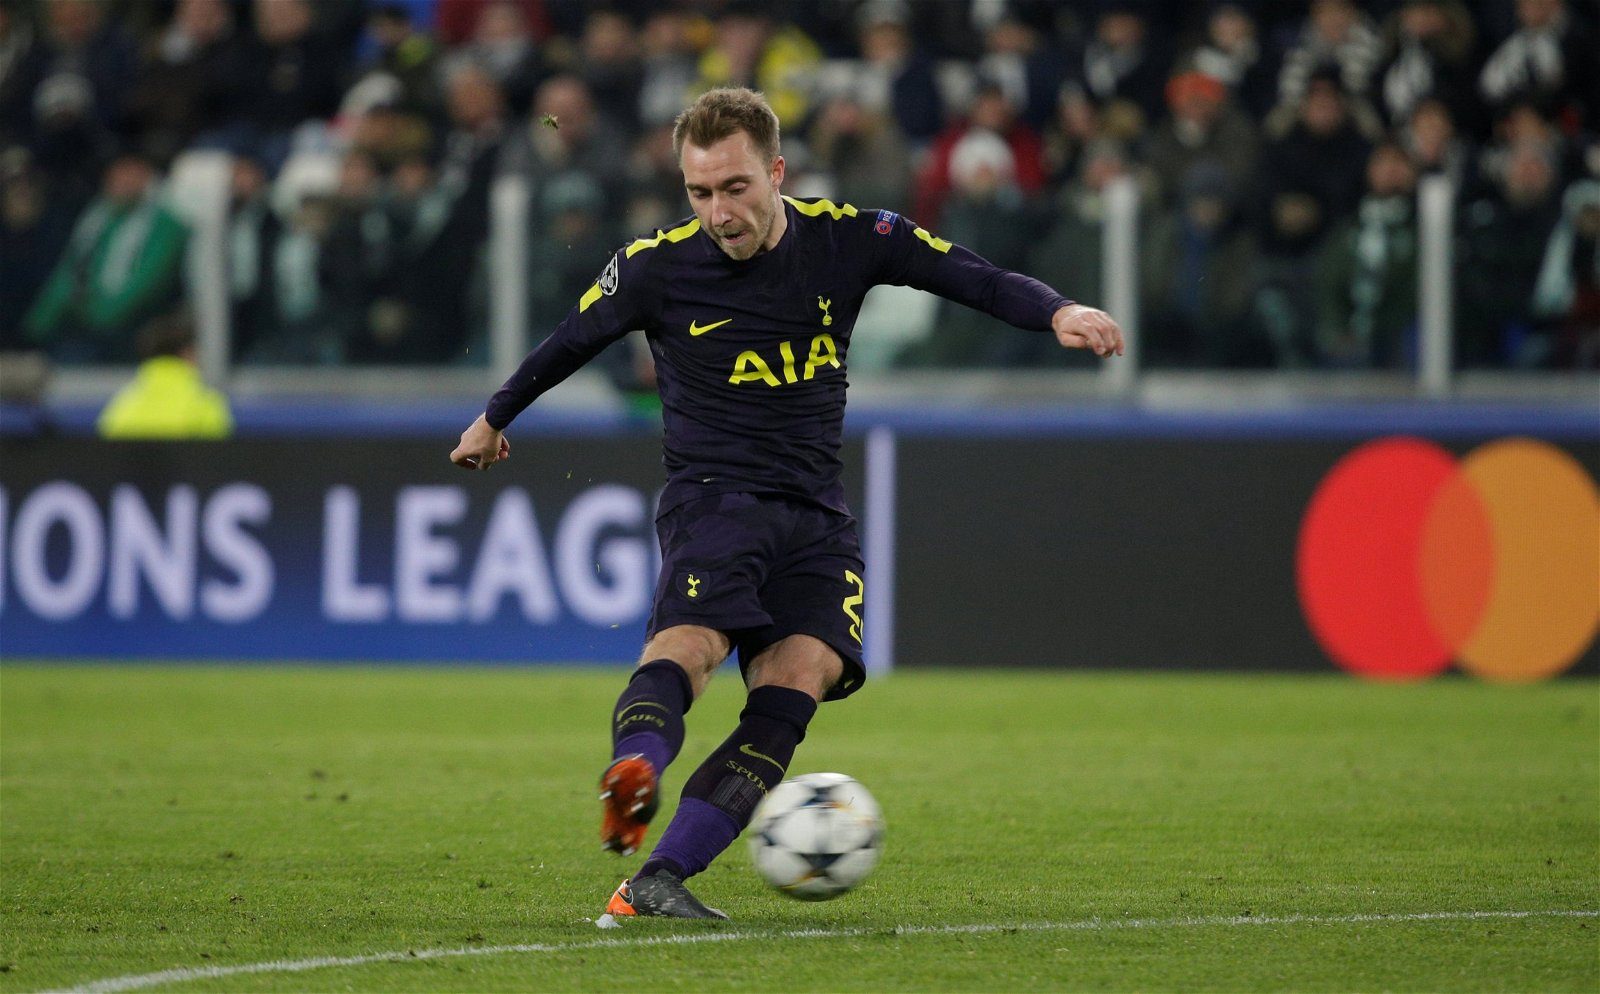 Christian Eriksen takes a free kick for Tottenham Hotspur